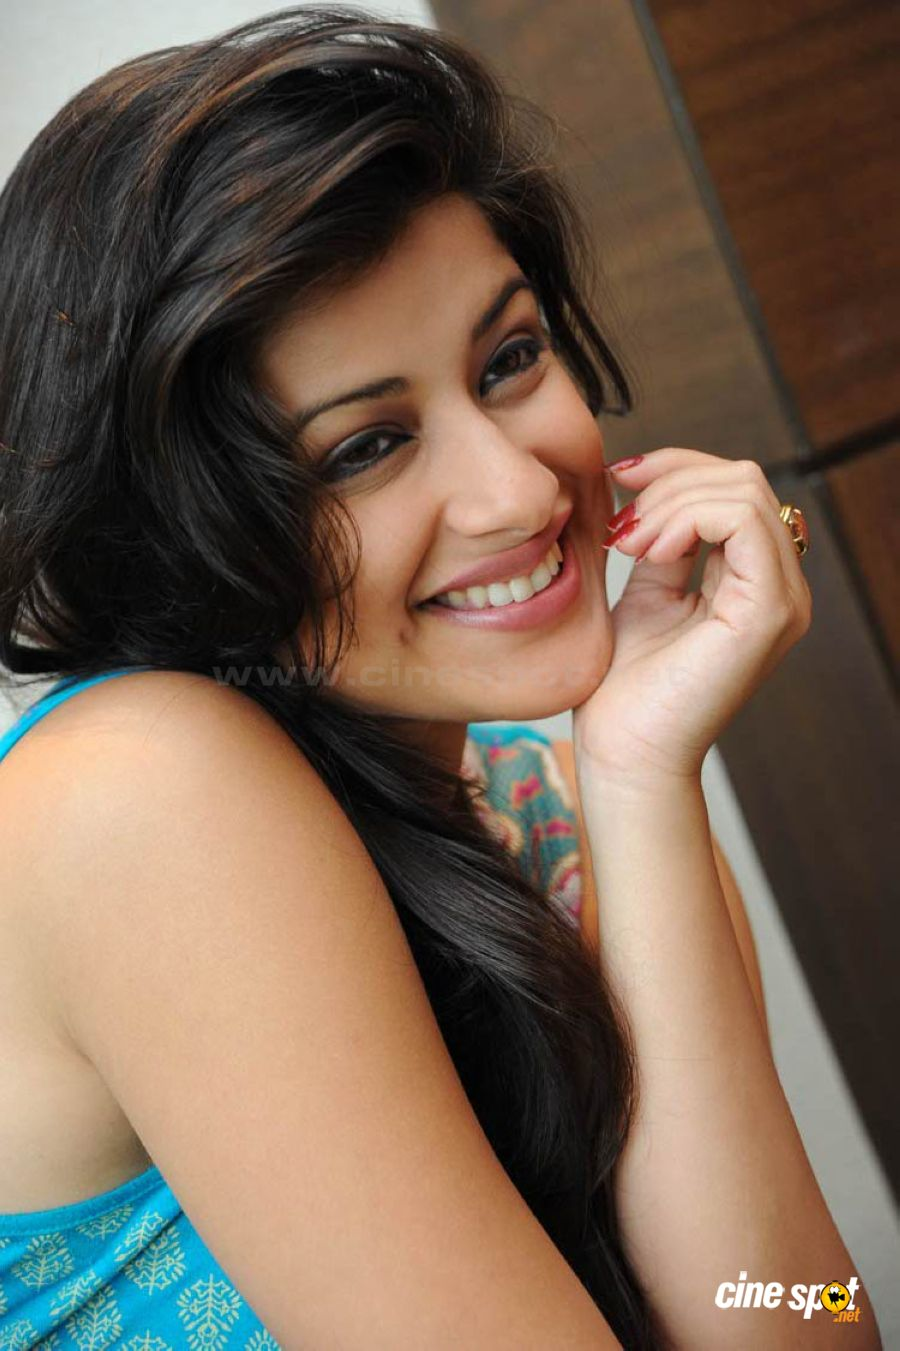 video title south indian actress madhurima latest photo video